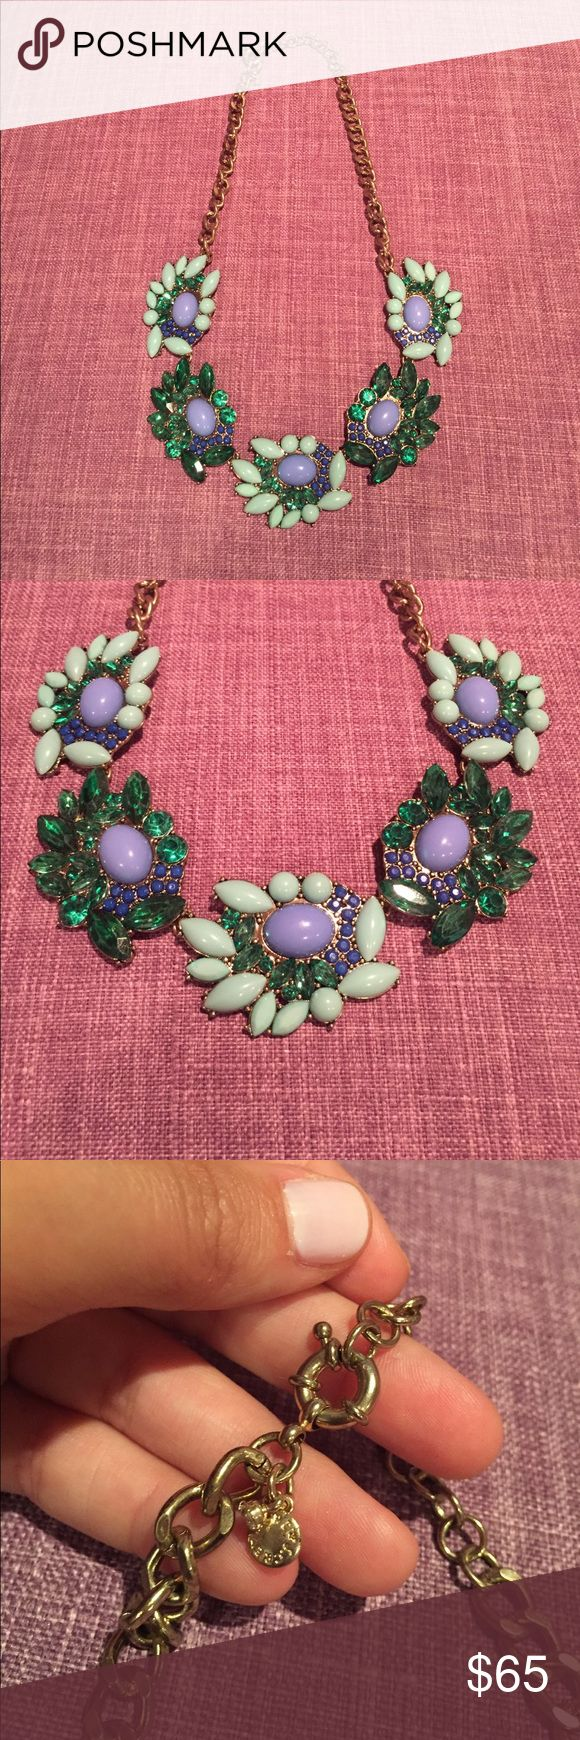 J.Crew Necklace J.Crew necklace never worn.. purchased in their flagship location. Stunning statement piece for a special occasion or for a nice dinner! You can dress up or dress down. It has mint green and forest Crew  touches with a hint of perrywinkle blues J. Crew Jewelry Necklaces